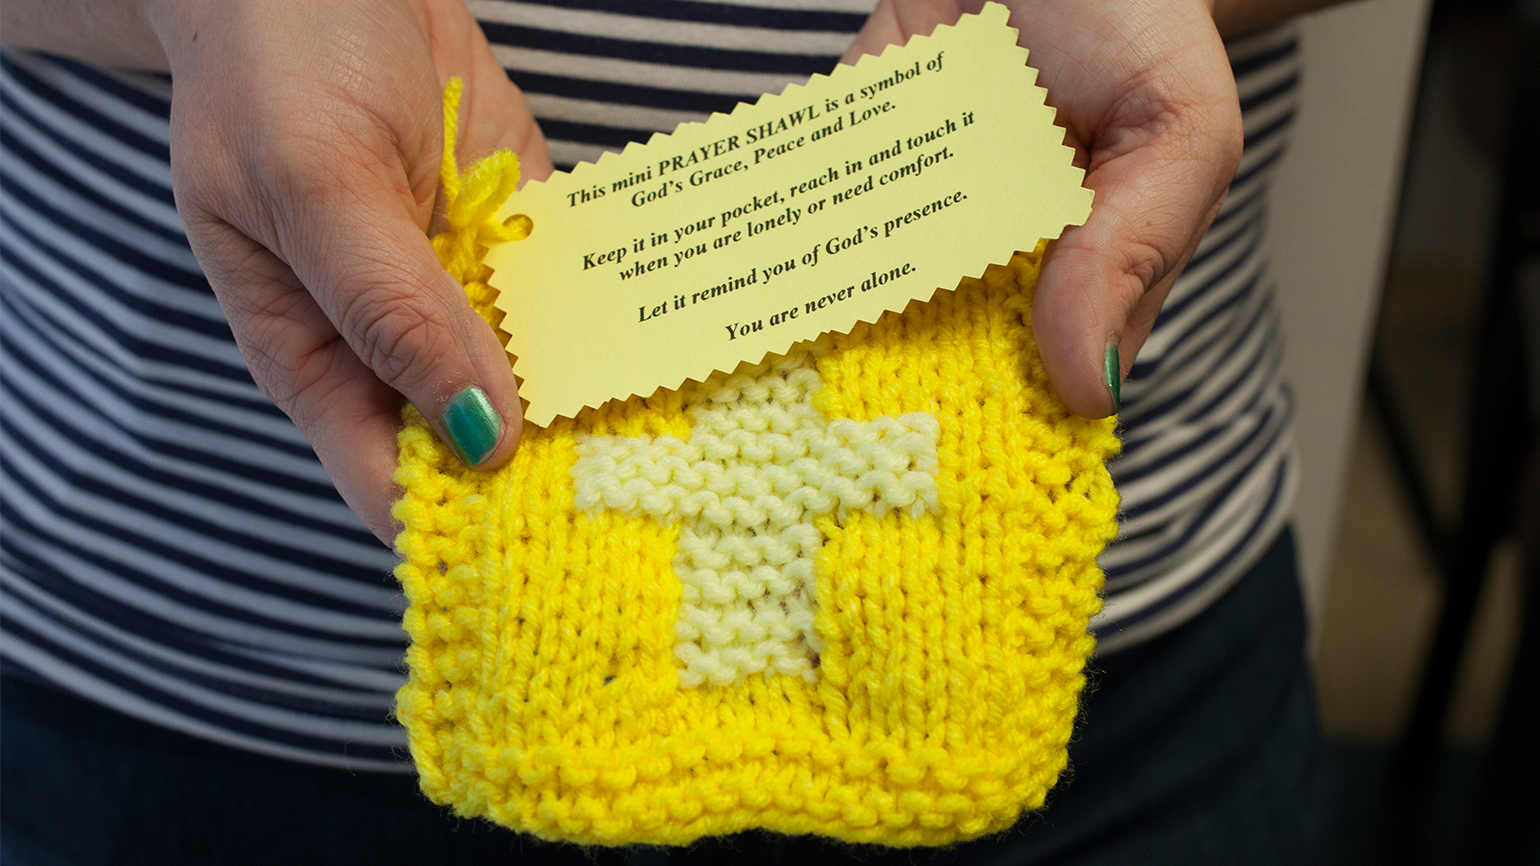 Doris Kuegler's mini-prayer shawl